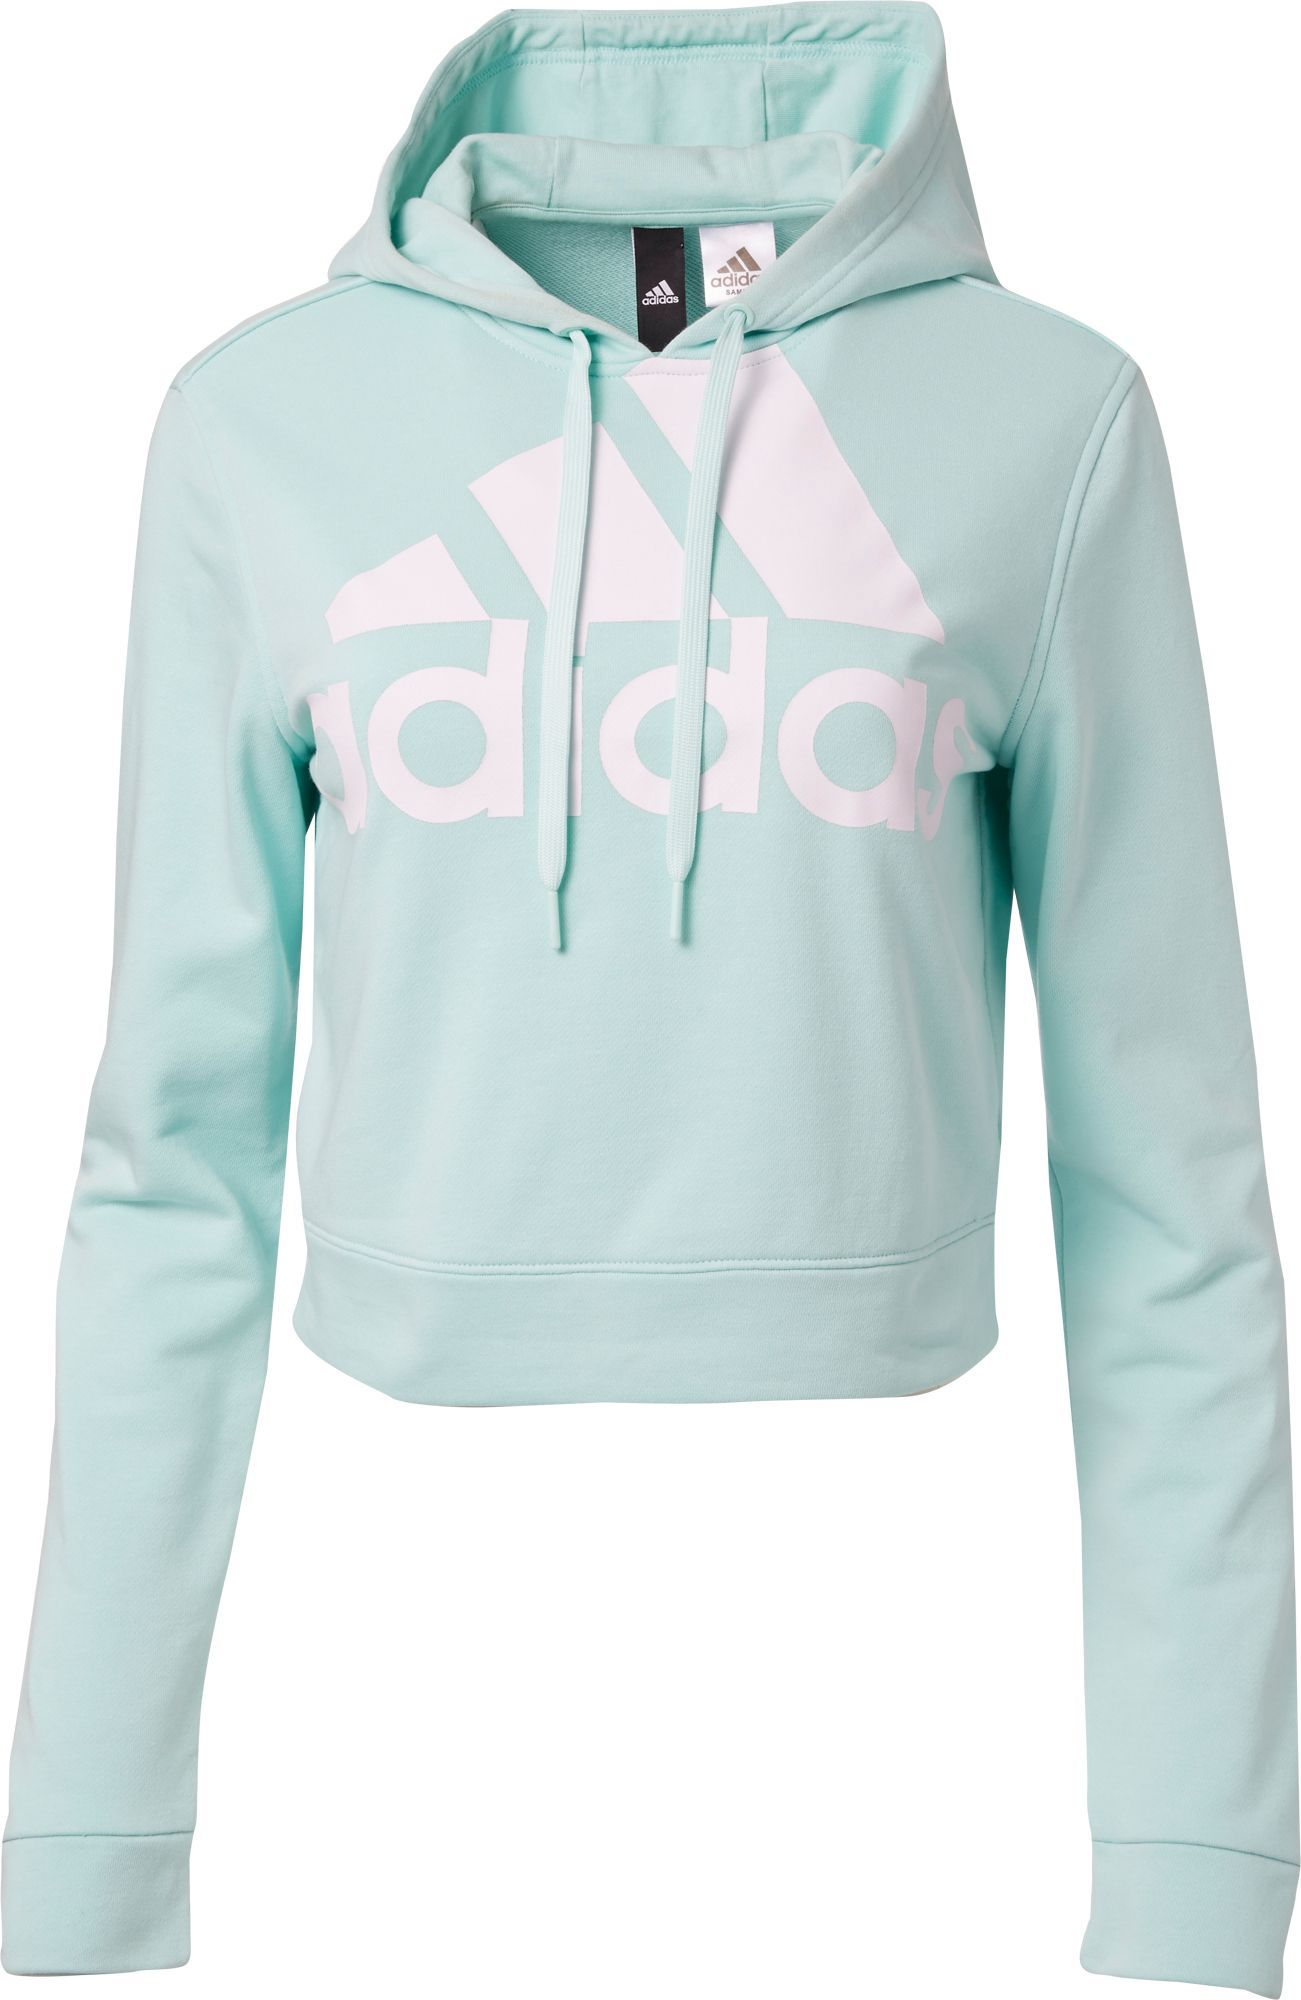 9c5712fd adidas Women's Cropped French Terry Hoodie in 2019 | Products ...